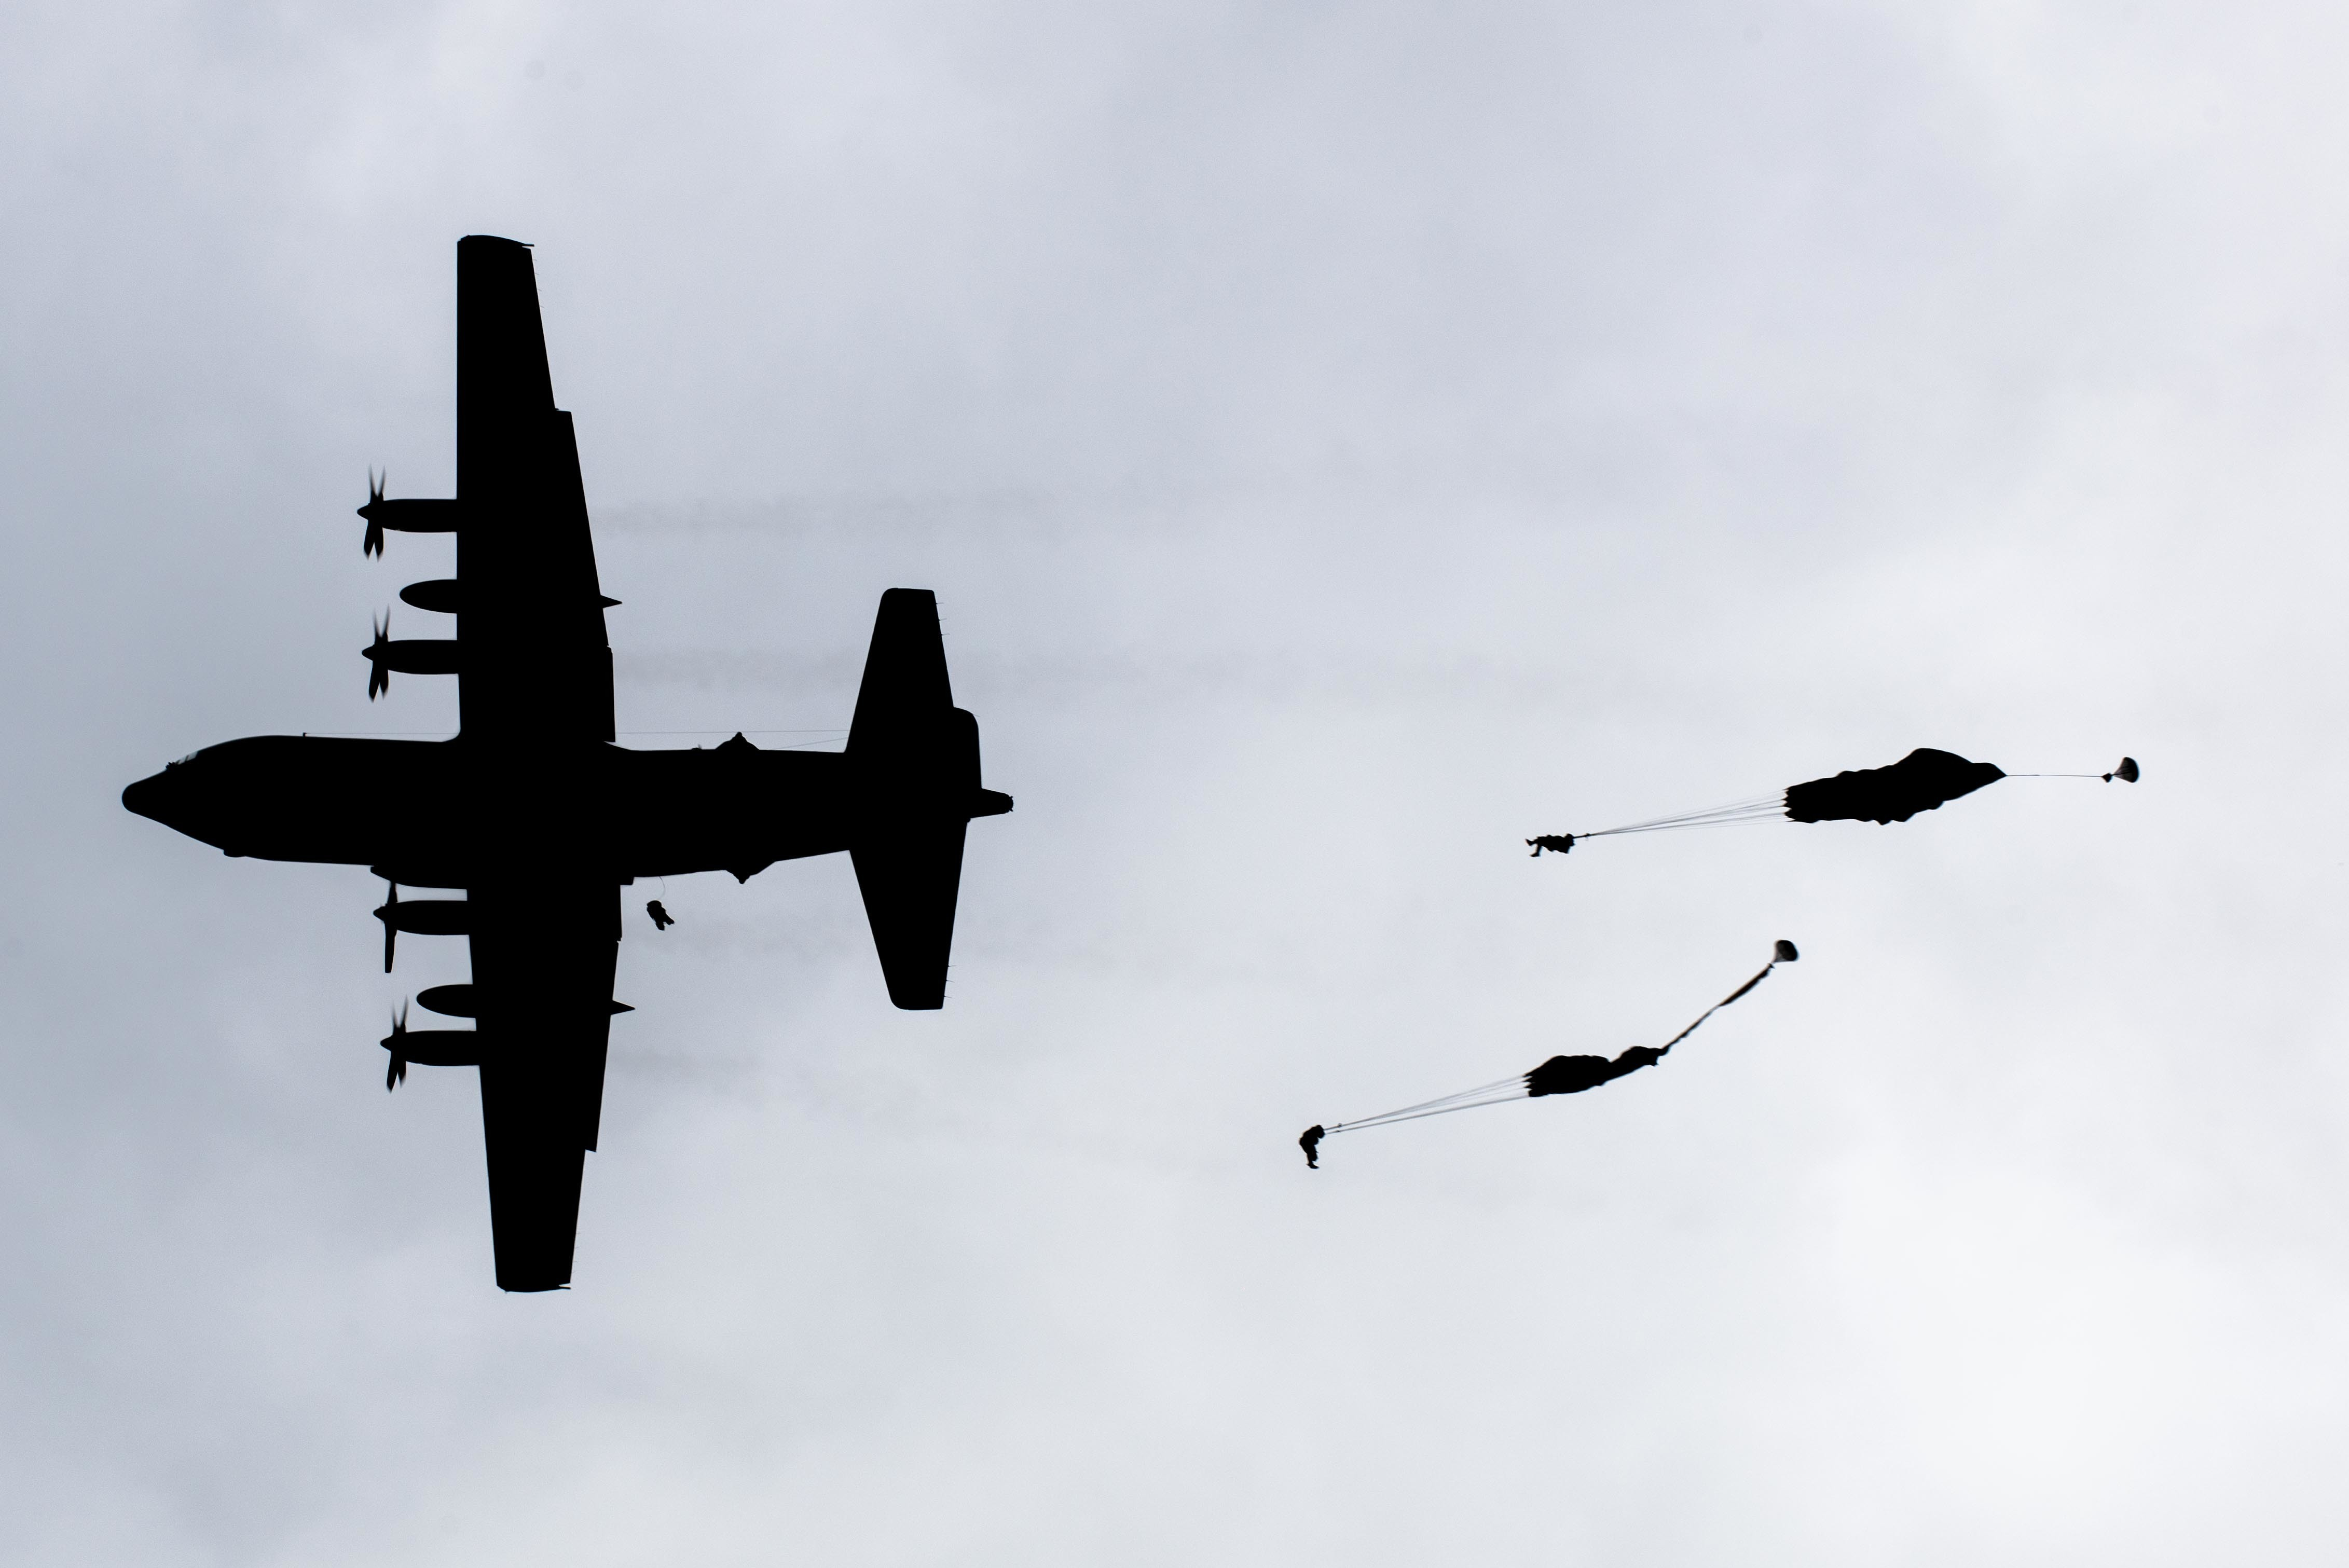 For Planners There S More To Airdrops Than Jumping Out A Plane Article The United States Army